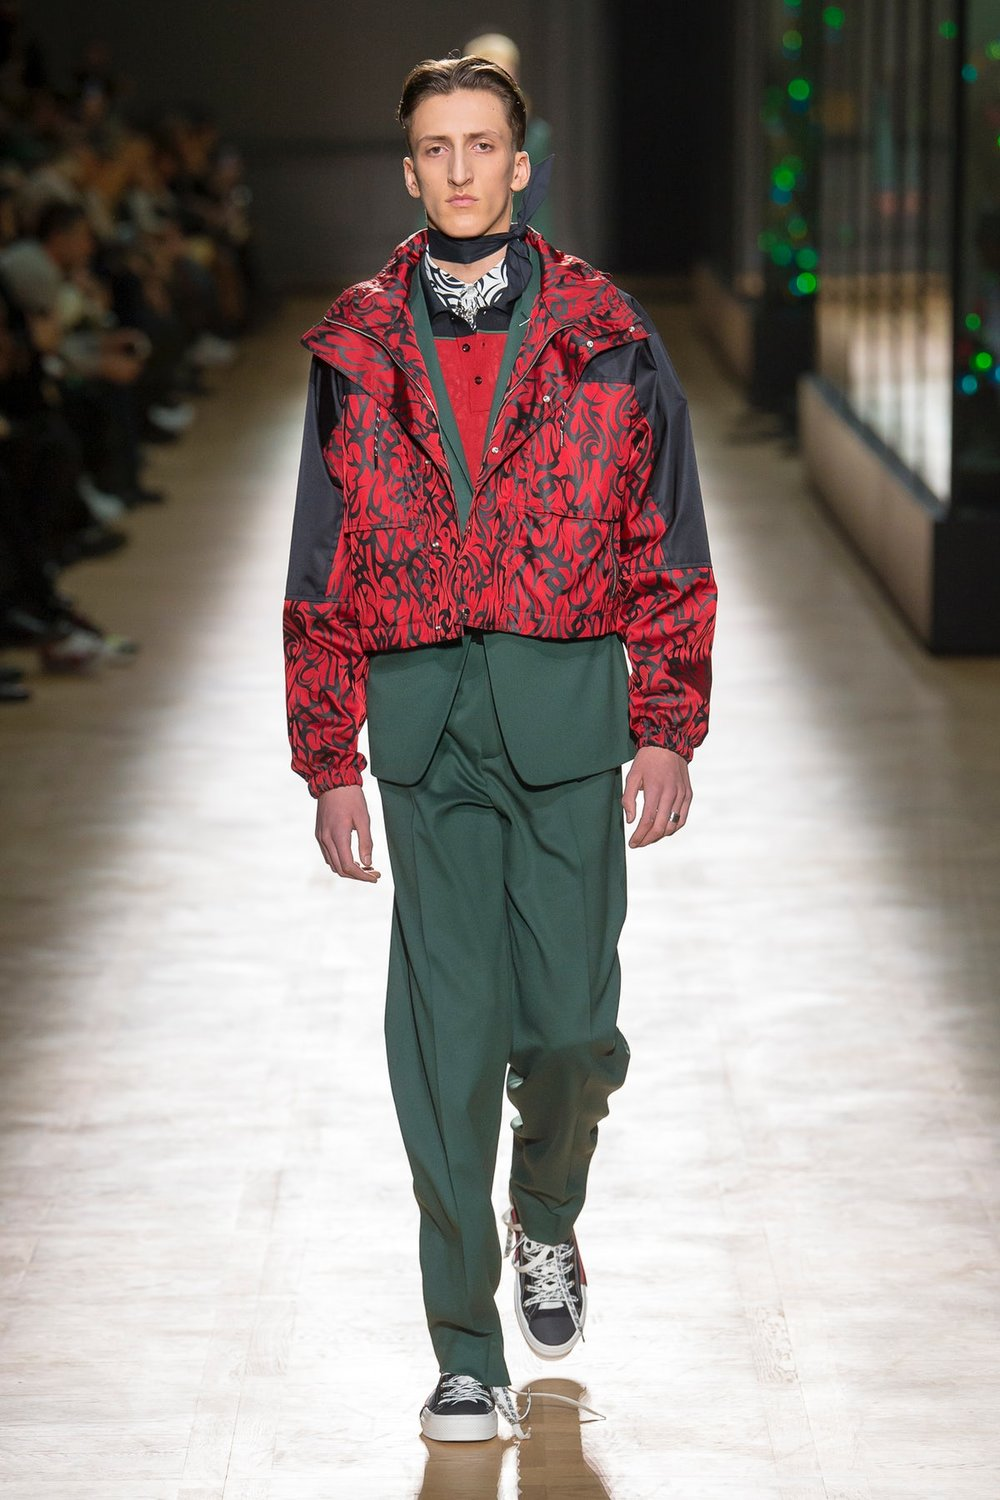 dior_homme_look_24_menswear_autumn_2018.jpeg